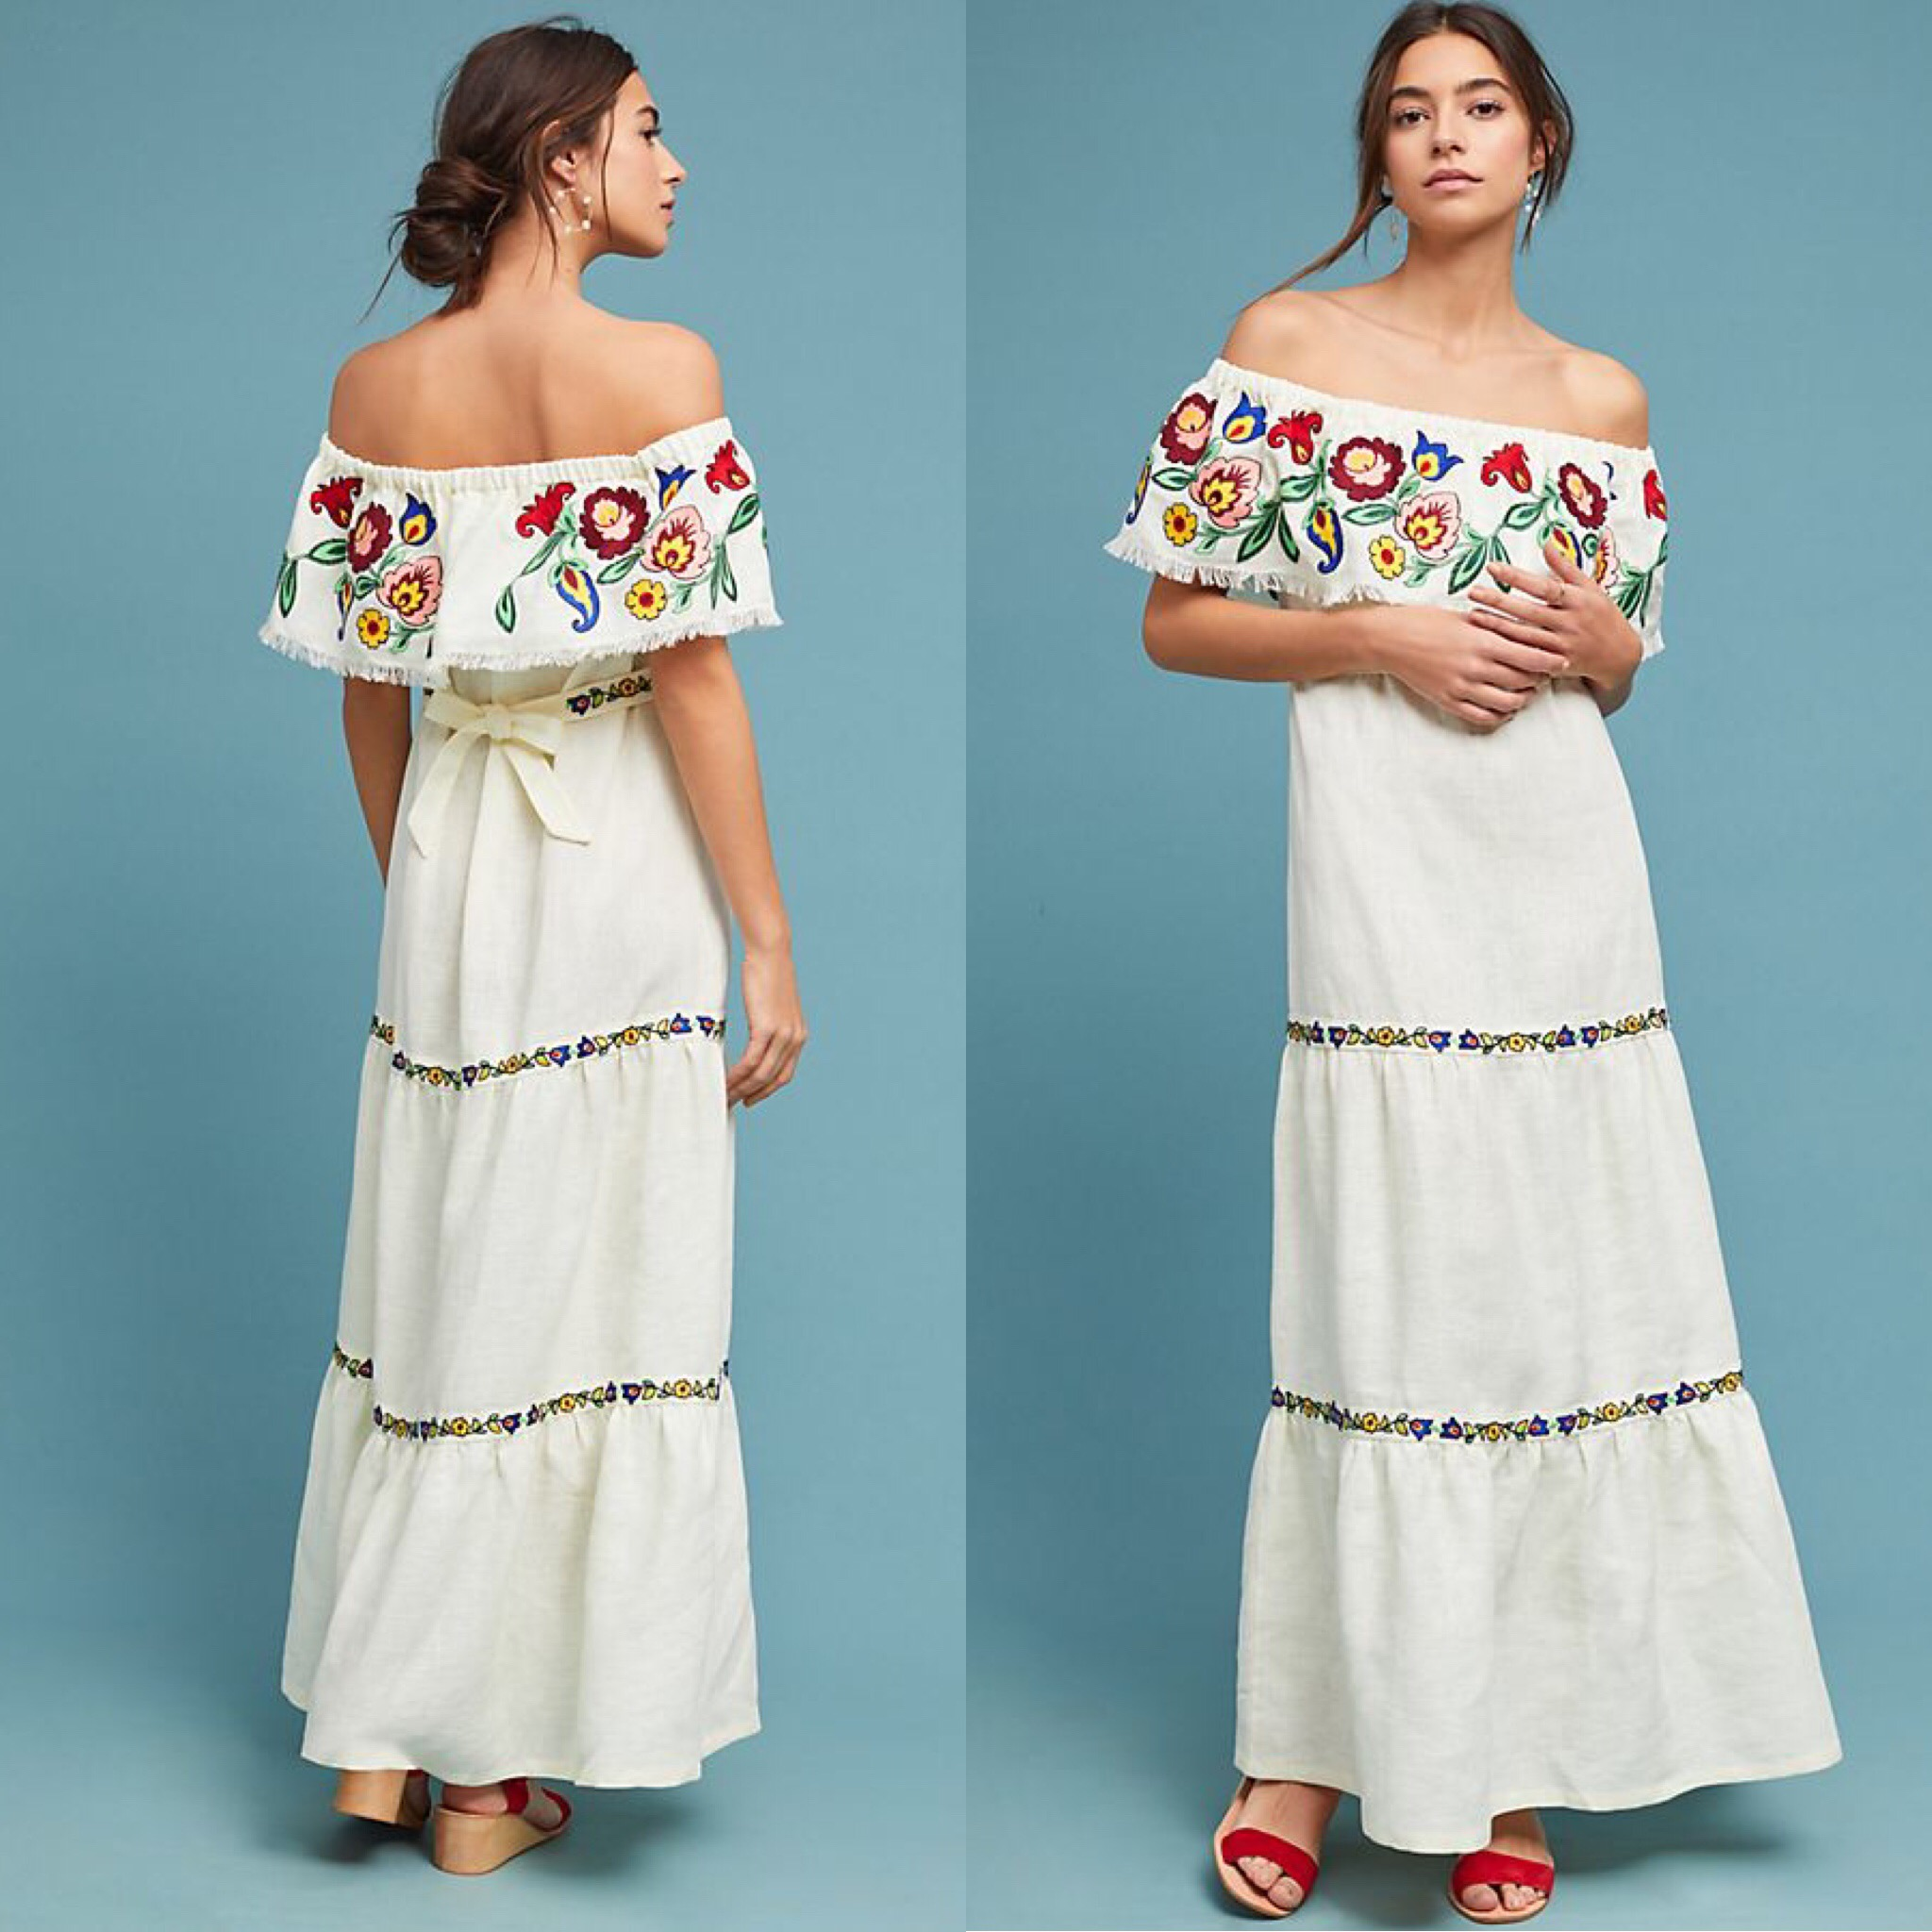 from Anthropologie.com